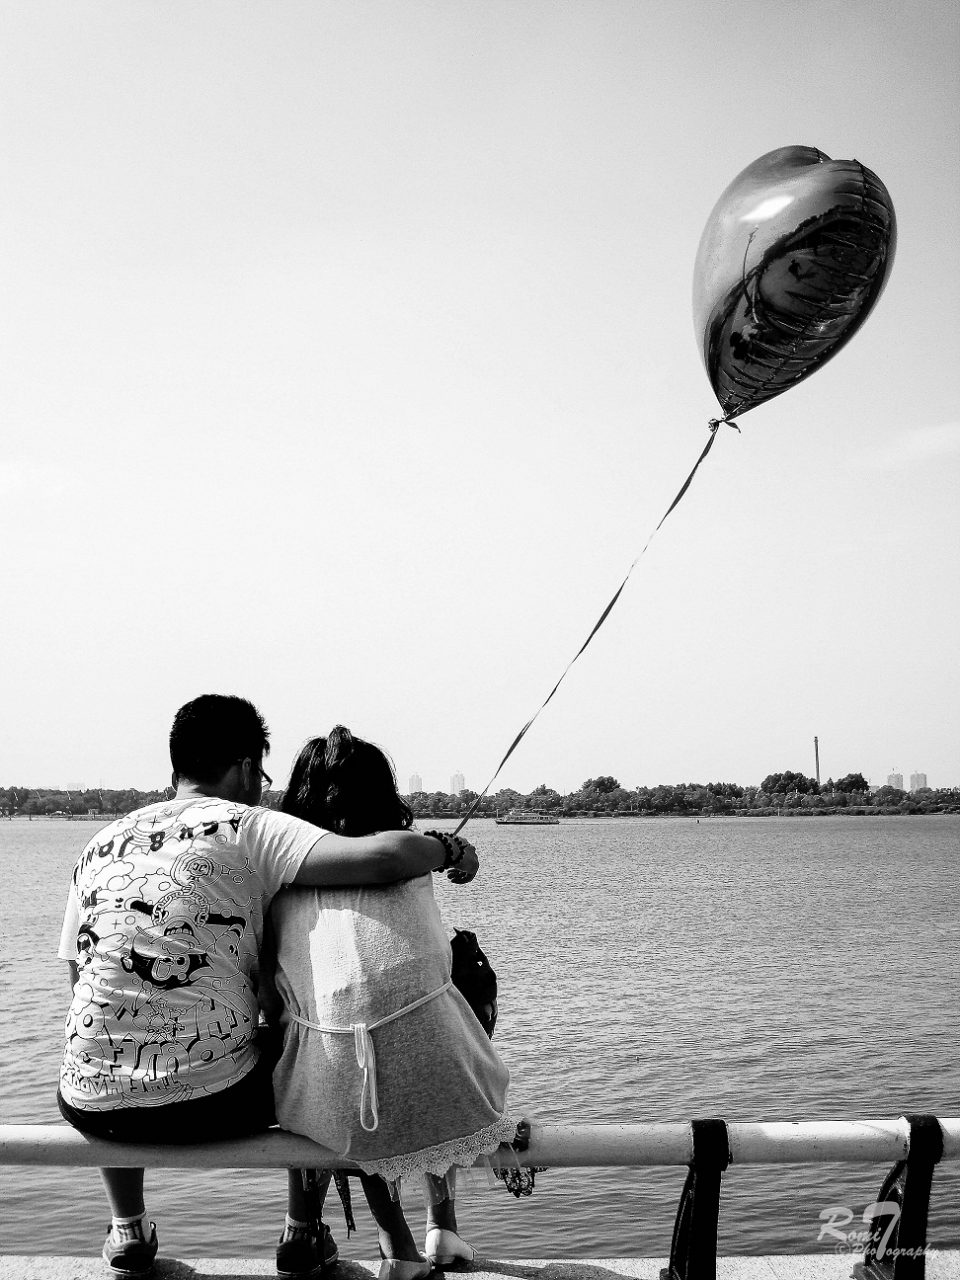 A young couple by the lake with a balloon, by Romit Thapa